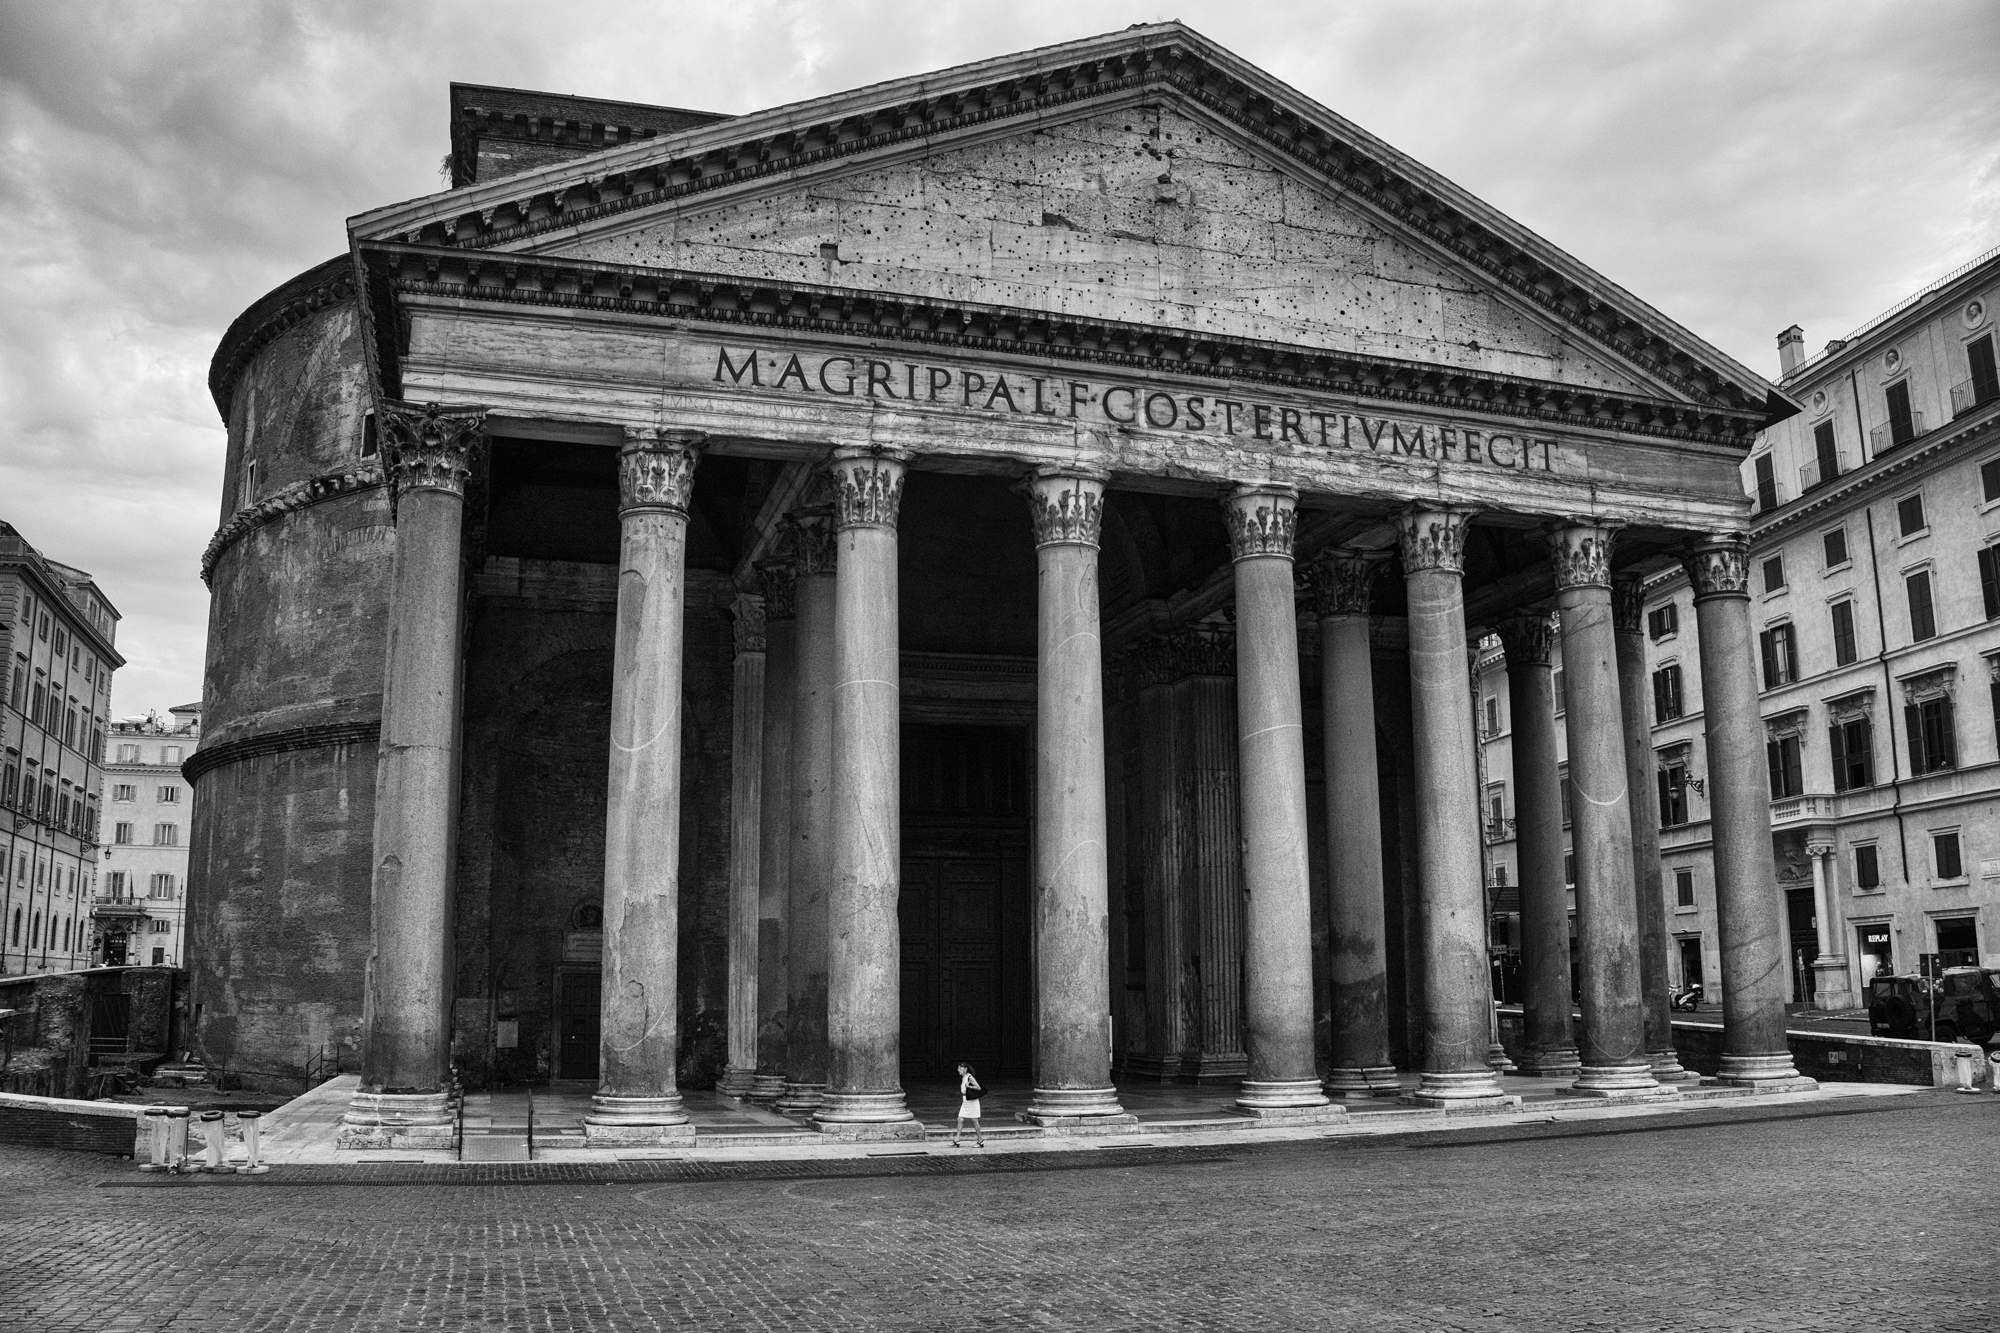 Pantheon - Rome - September 2017